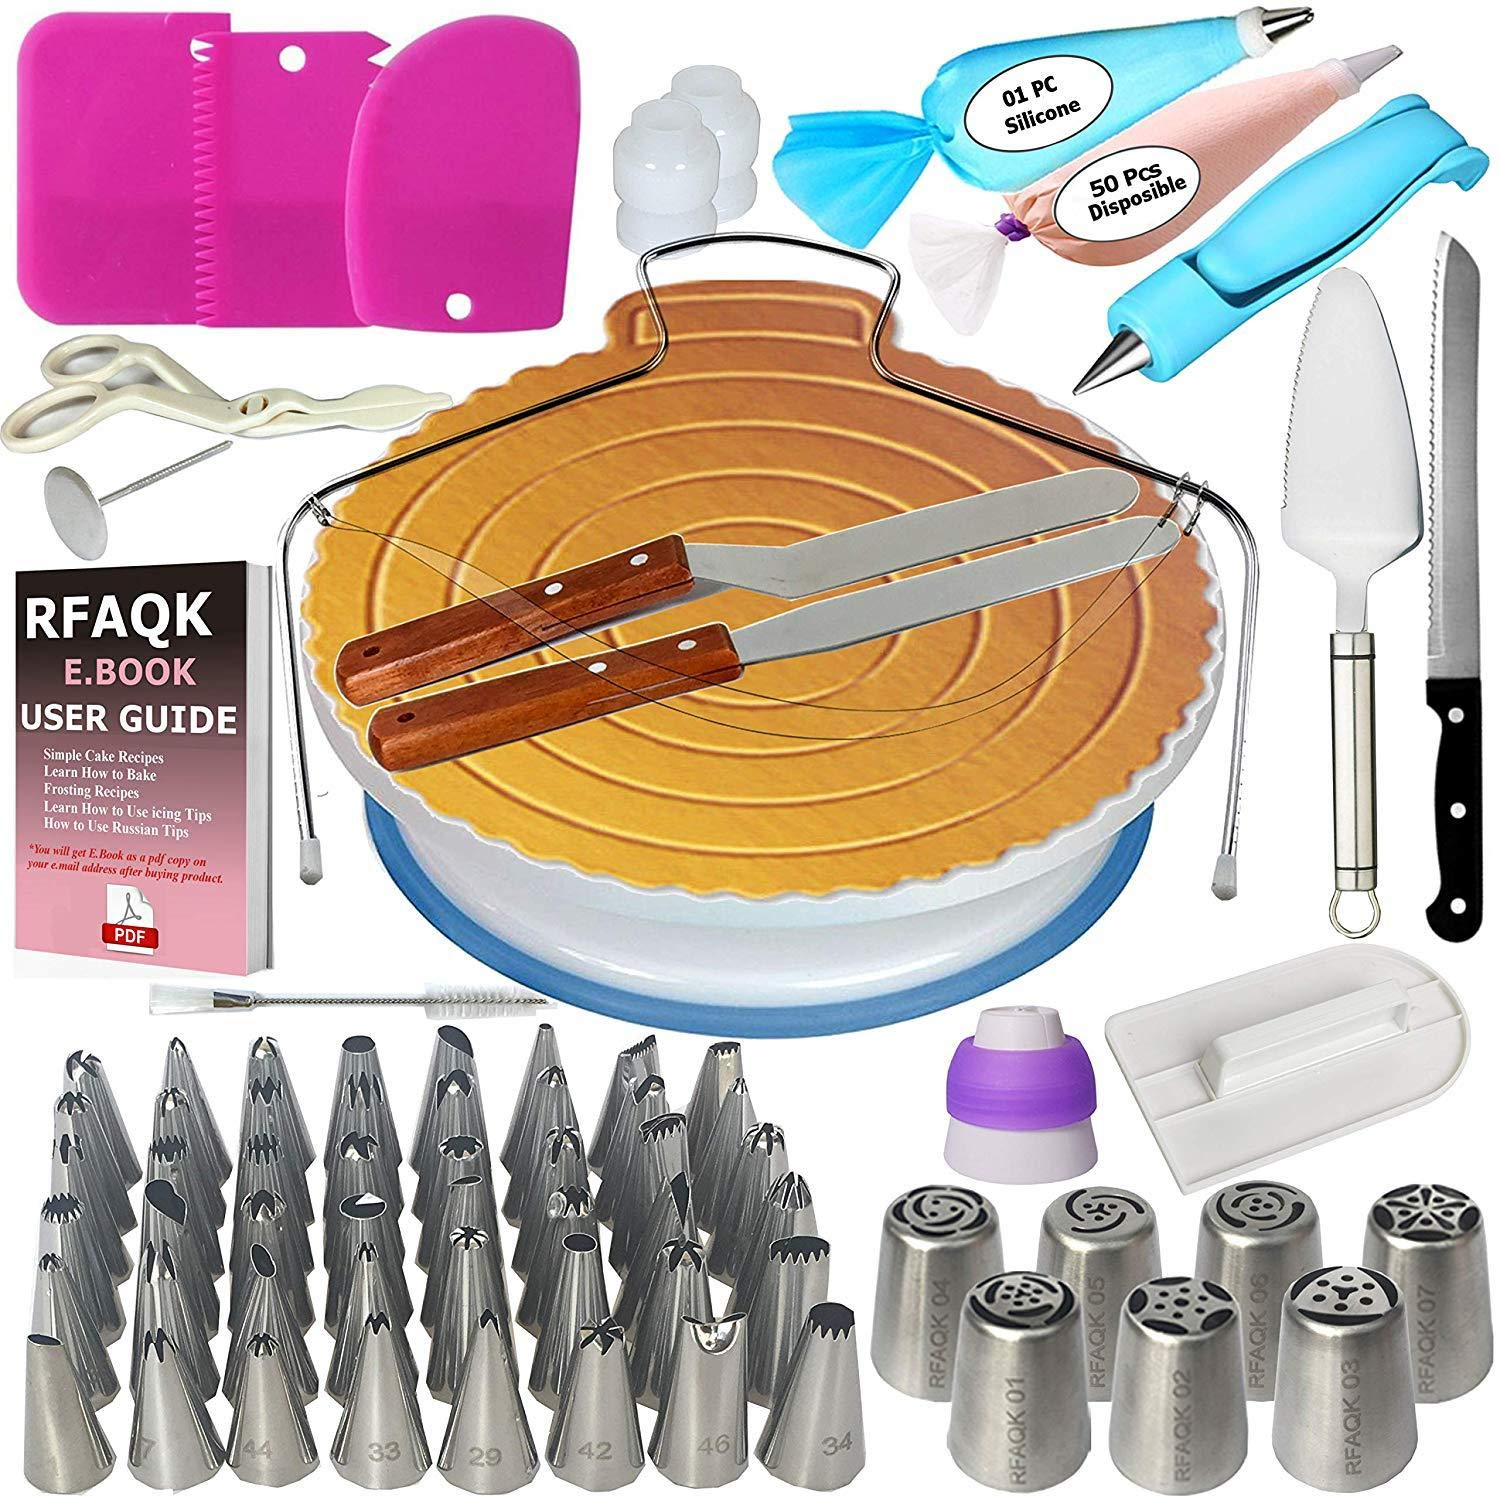 JHKJ Cake Decorating Supplies kit Including Cake Turntable Set Decorating Set Cake Decorating Tools Set,124pieces by JHKJ